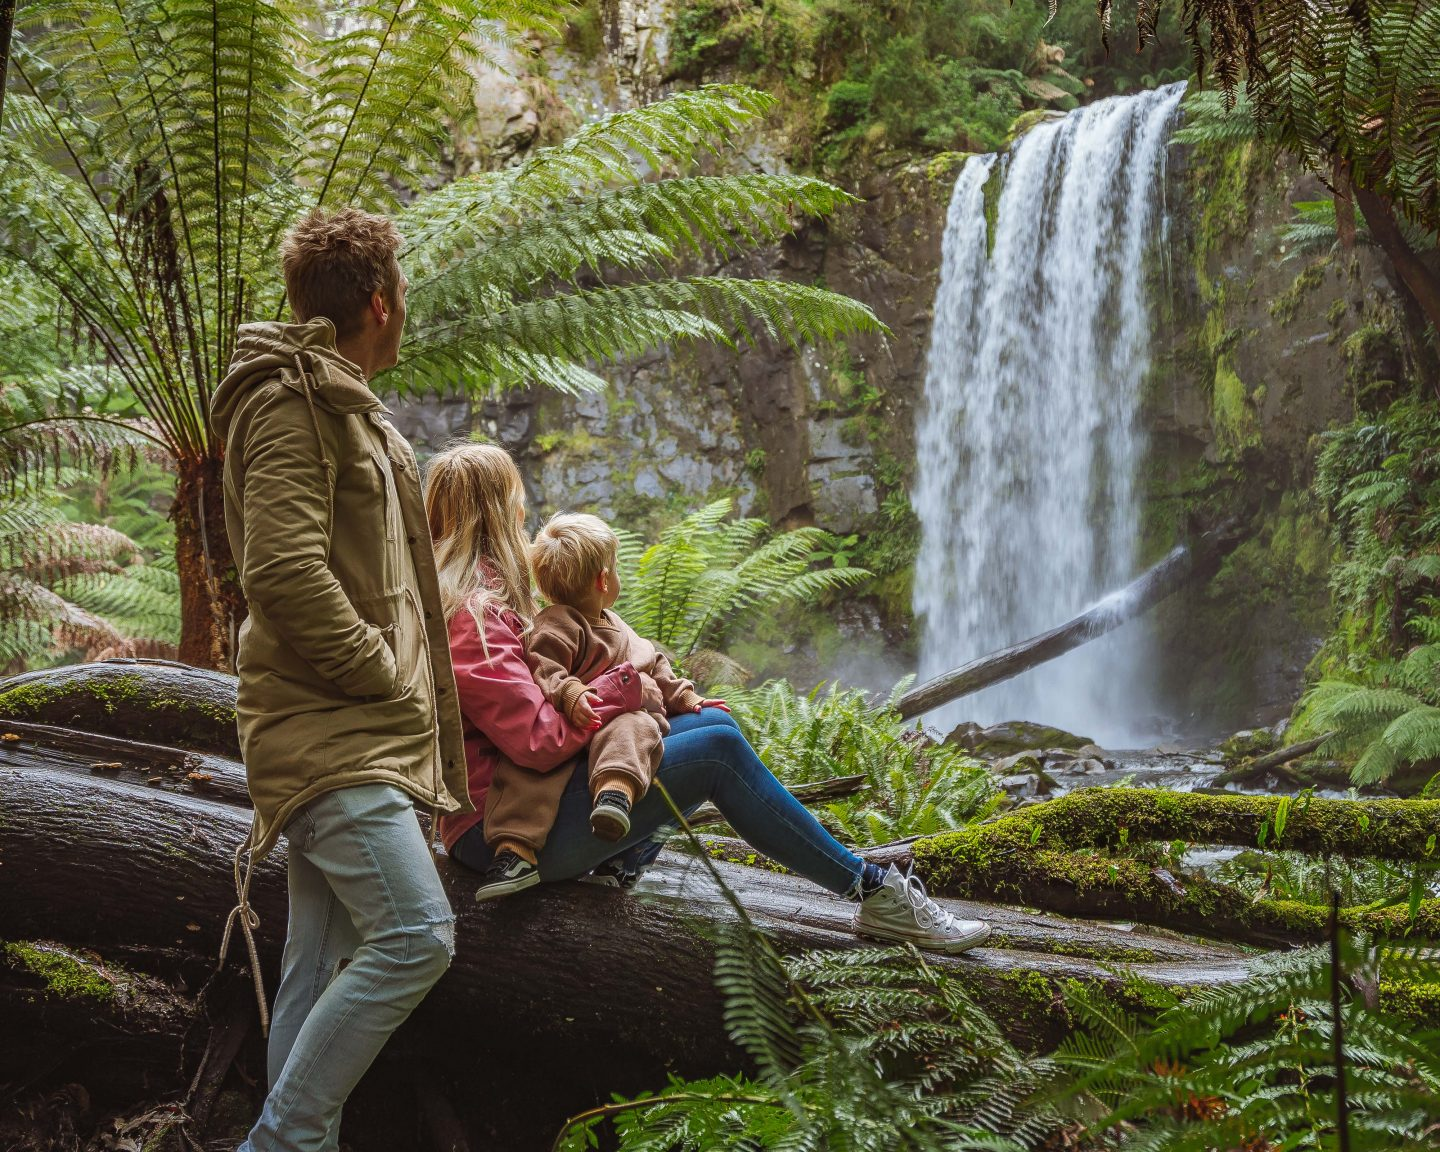 Most Instagrammable Spots on the Great Ocean Road - Hopetoun Falls *@livelifeandroam